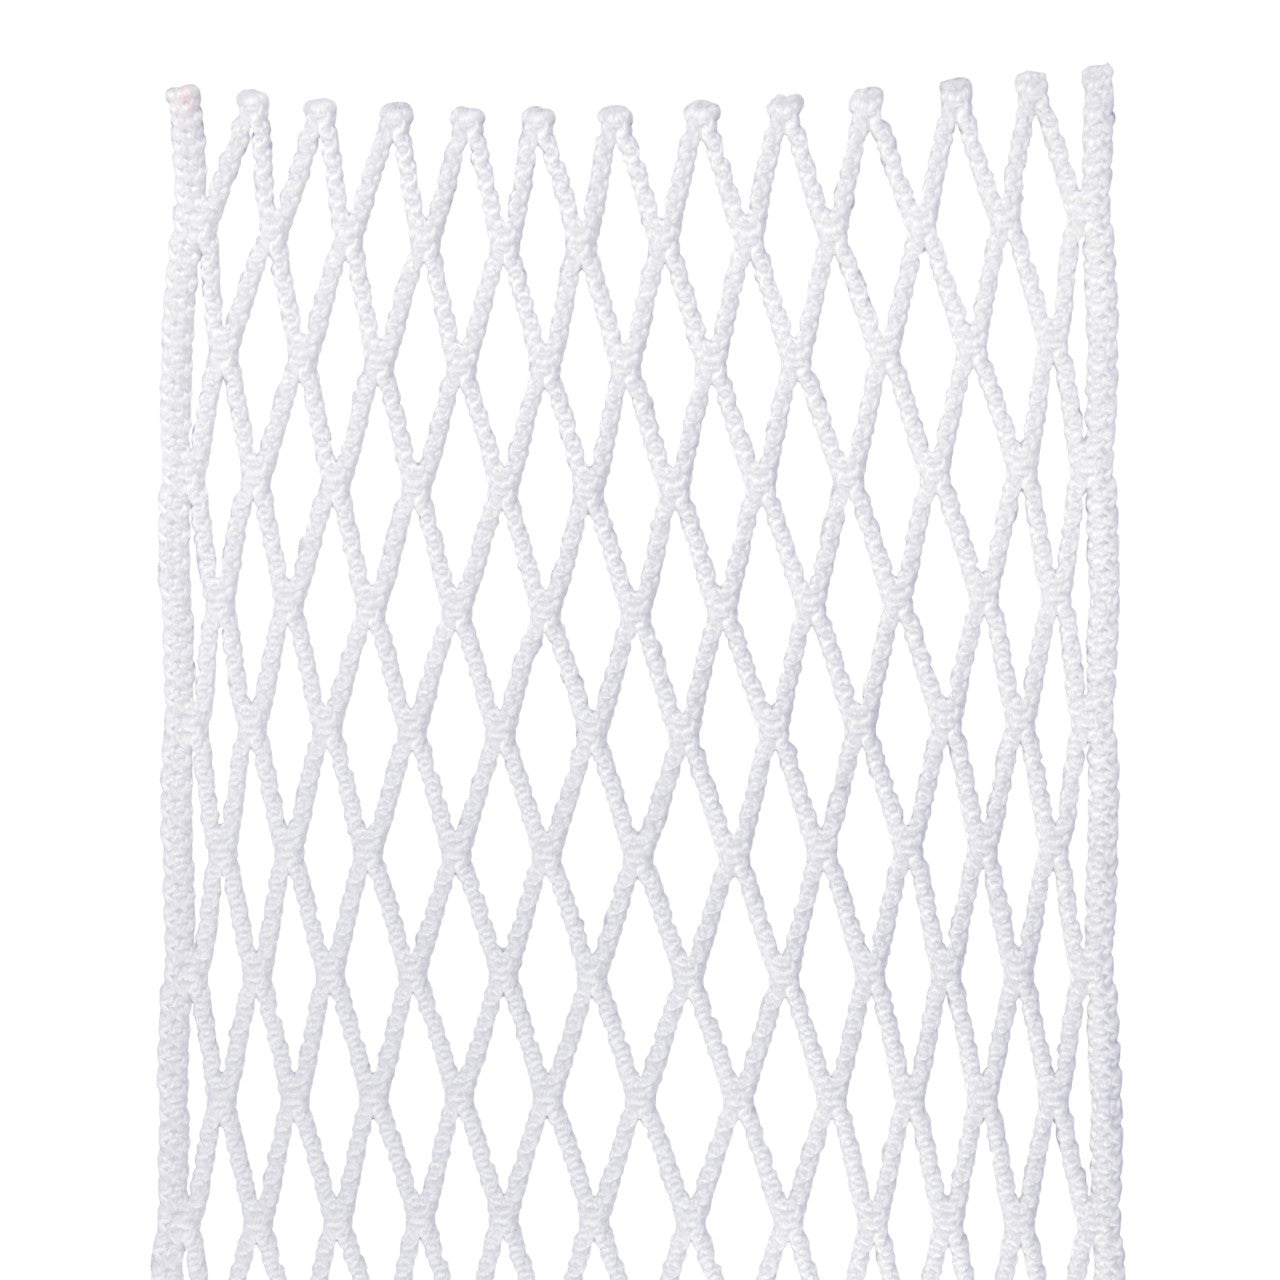 Stringking Grizzly Goalie Mesh